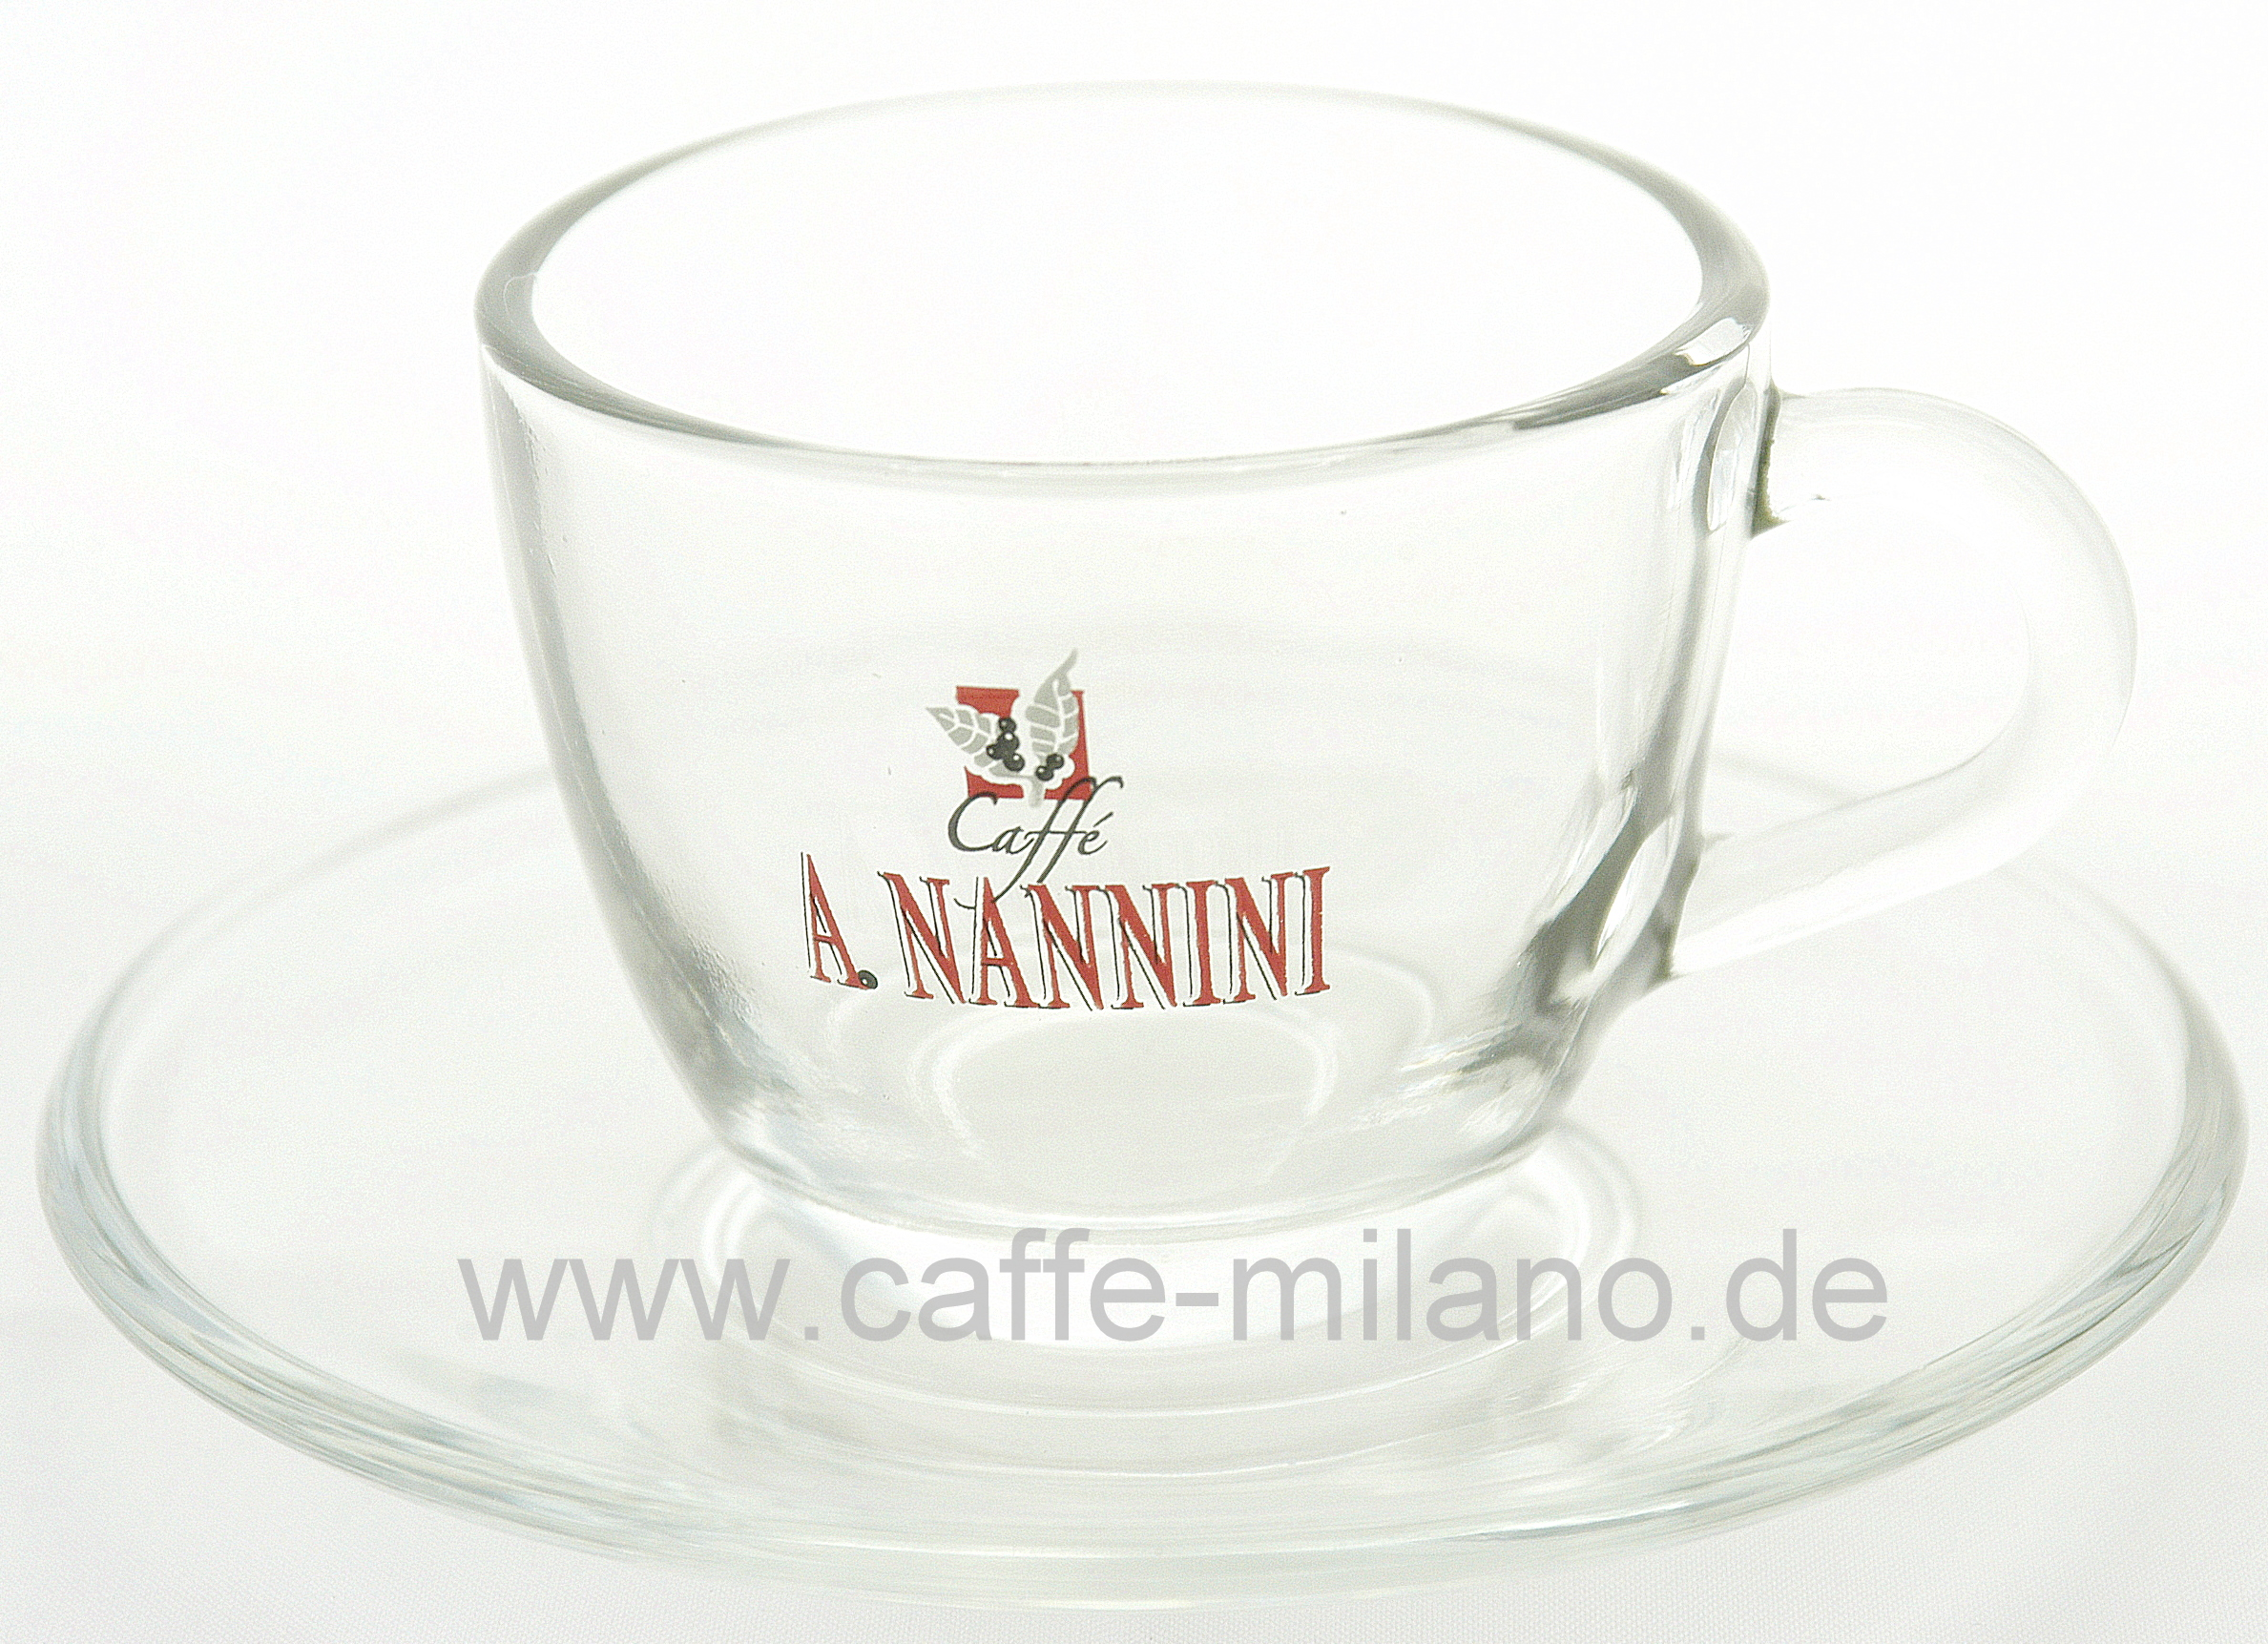 nannini cappuccino kaffee tasse aus glas caffe milano. Black Bedroom Furniture Sets. Home Design Ideas